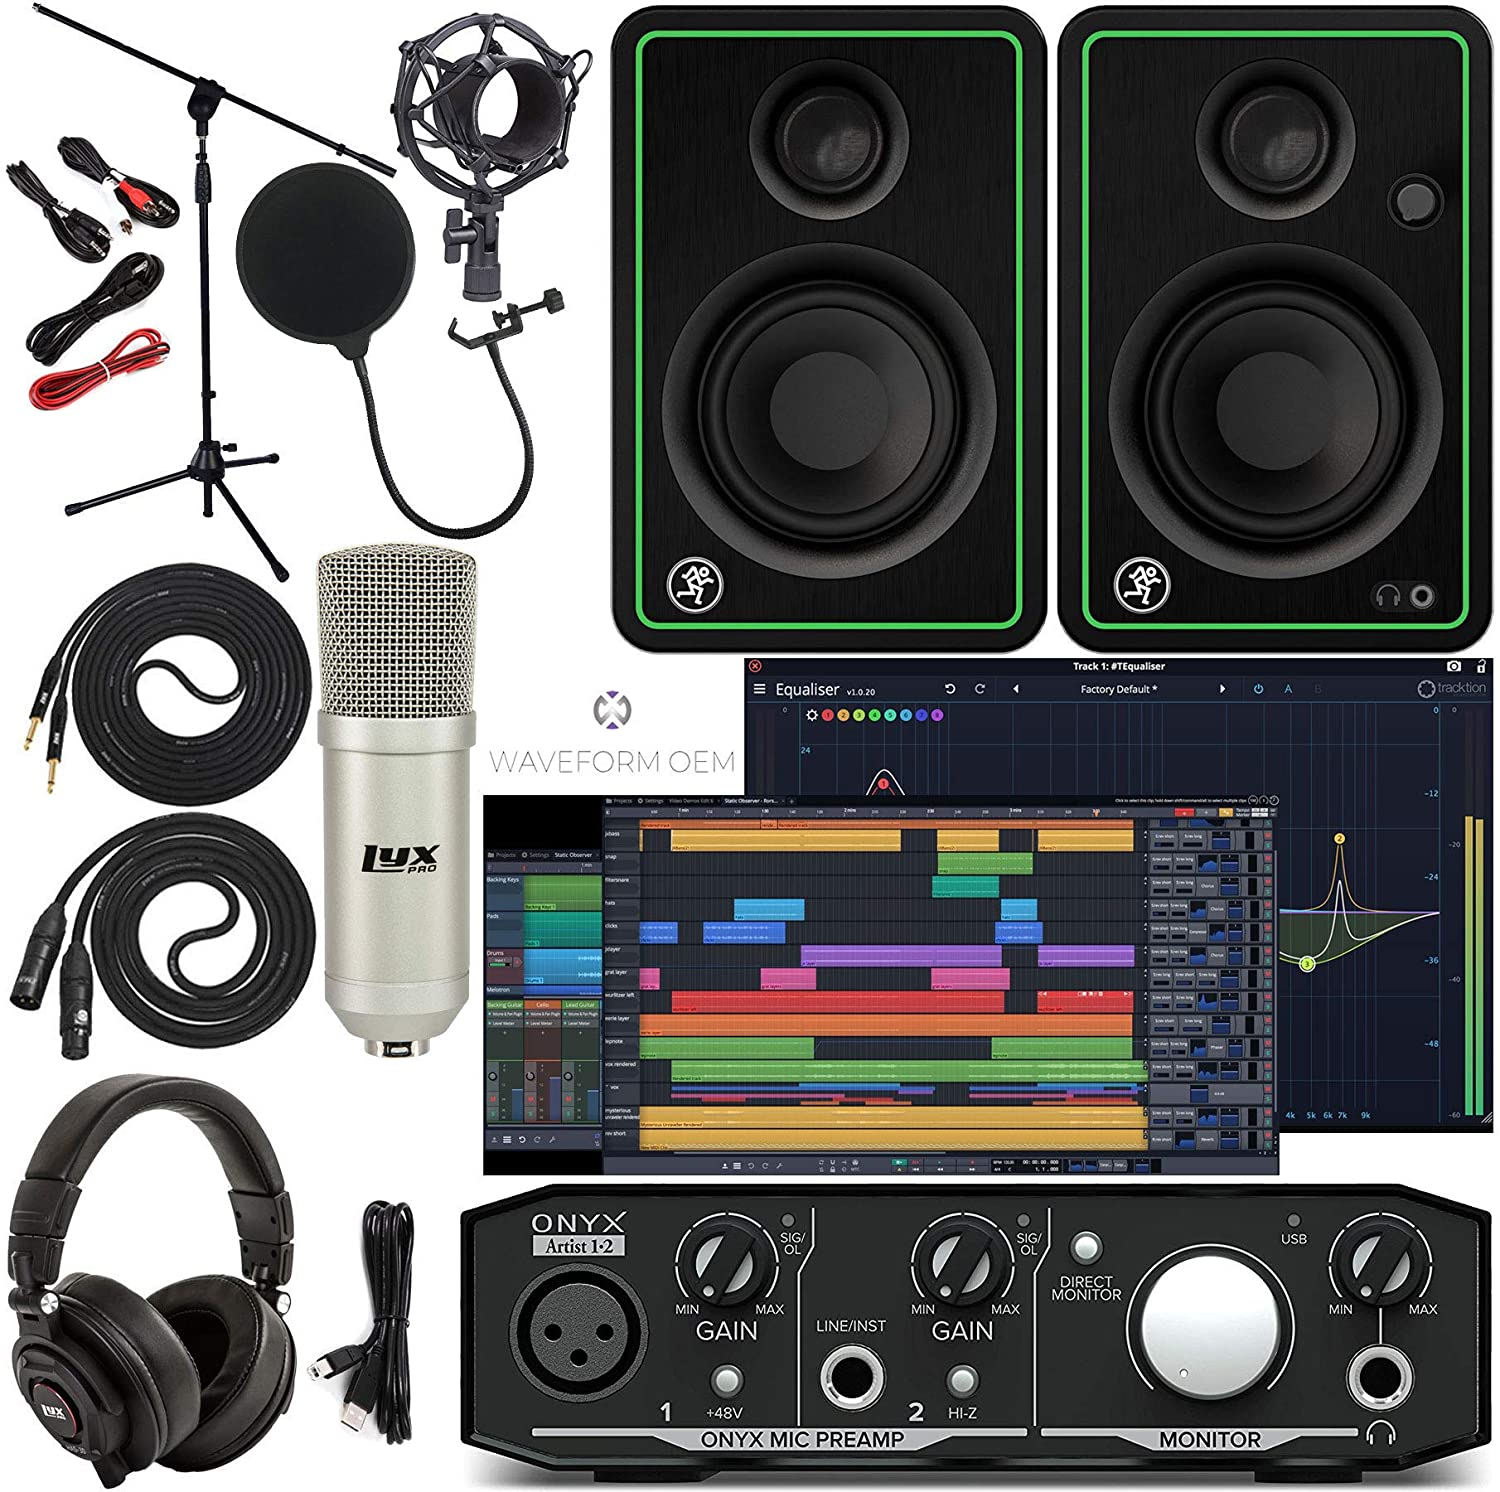 Mackie Onyx Artist 1-2 Audio Interface With Pro Tools First/Tracktion Music Production Software, CR5-X Pair Studio Monitors, Condenser Studio Microphone, XLR, Headphones, Mic Stand